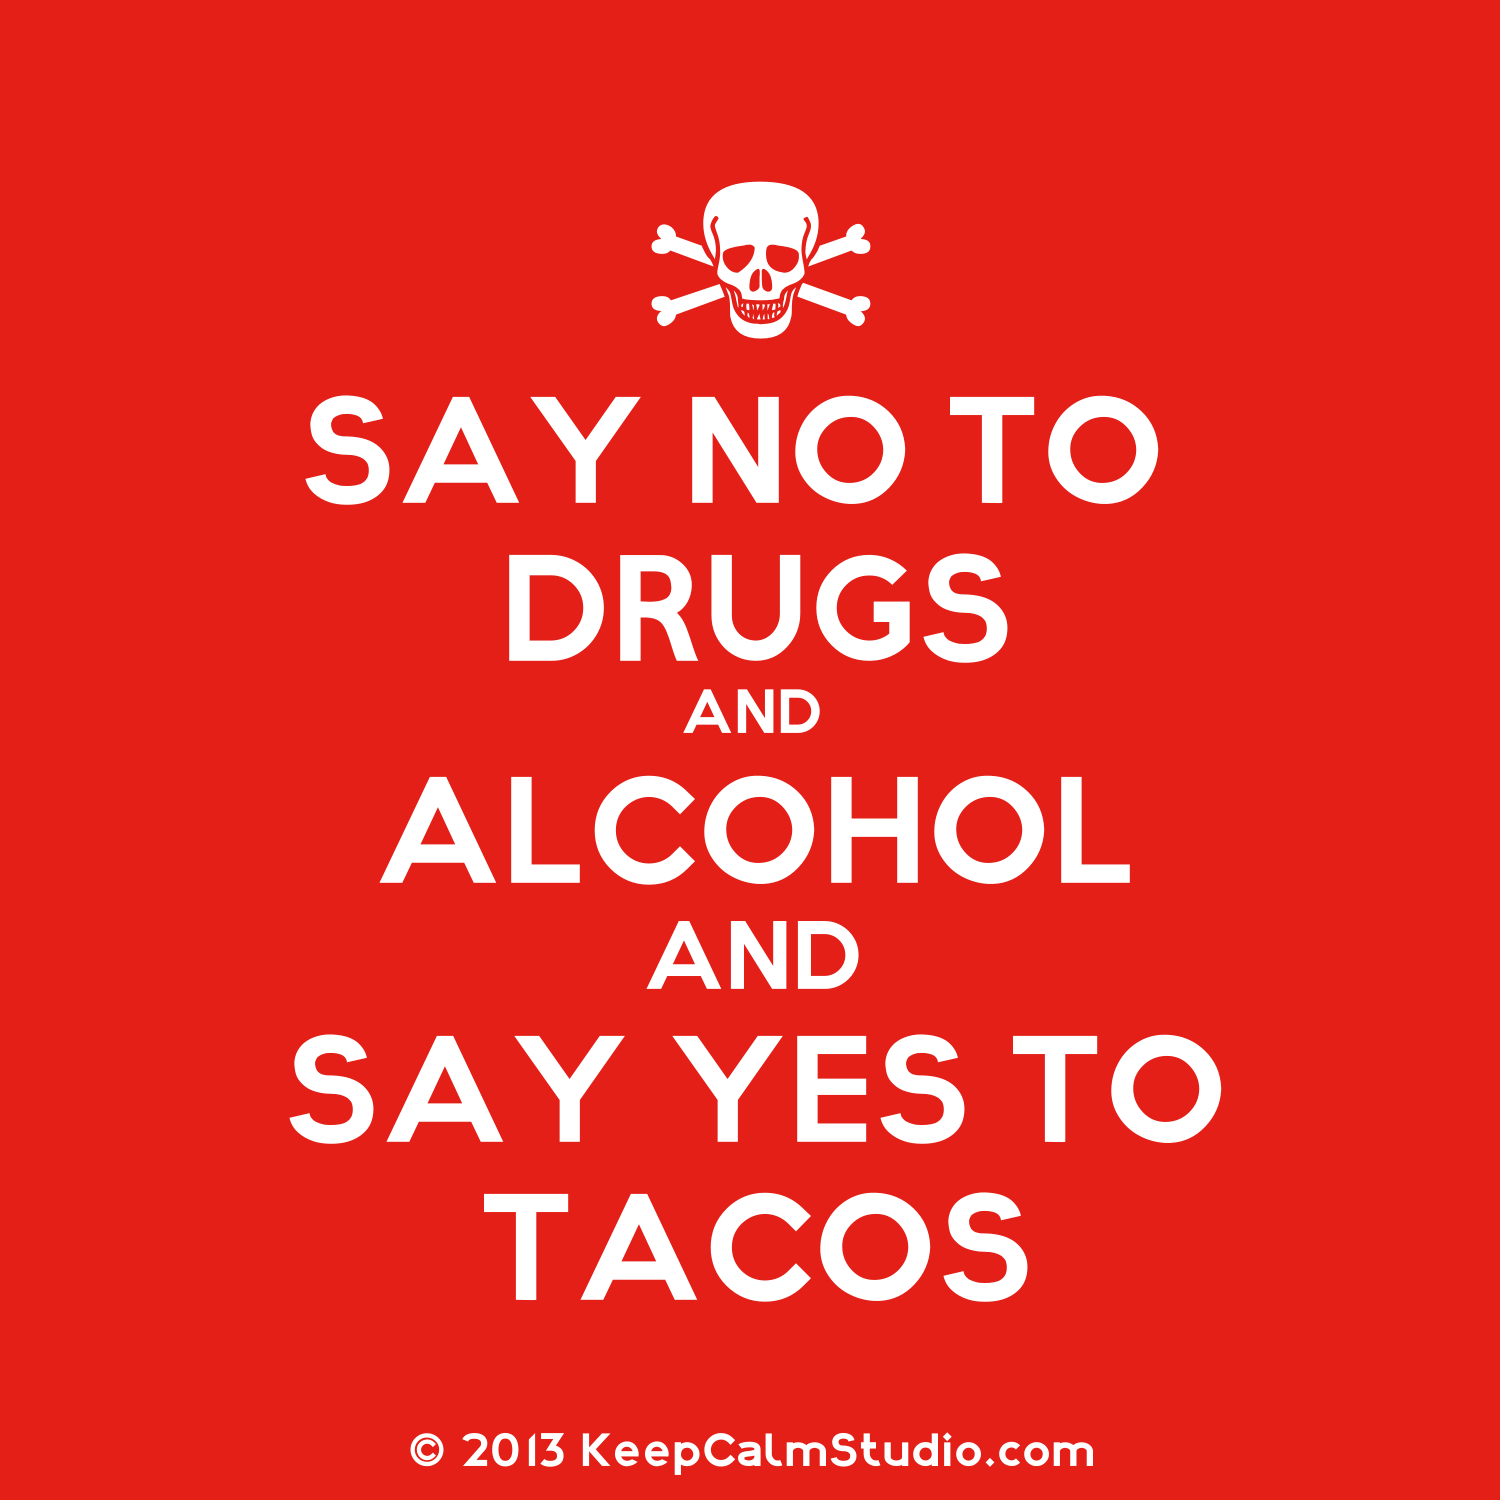 Quotes About Drugs Inspiration Just Say No To Drugs Slogans  Say No To Drugs And Alcohol And Say . Inspiration